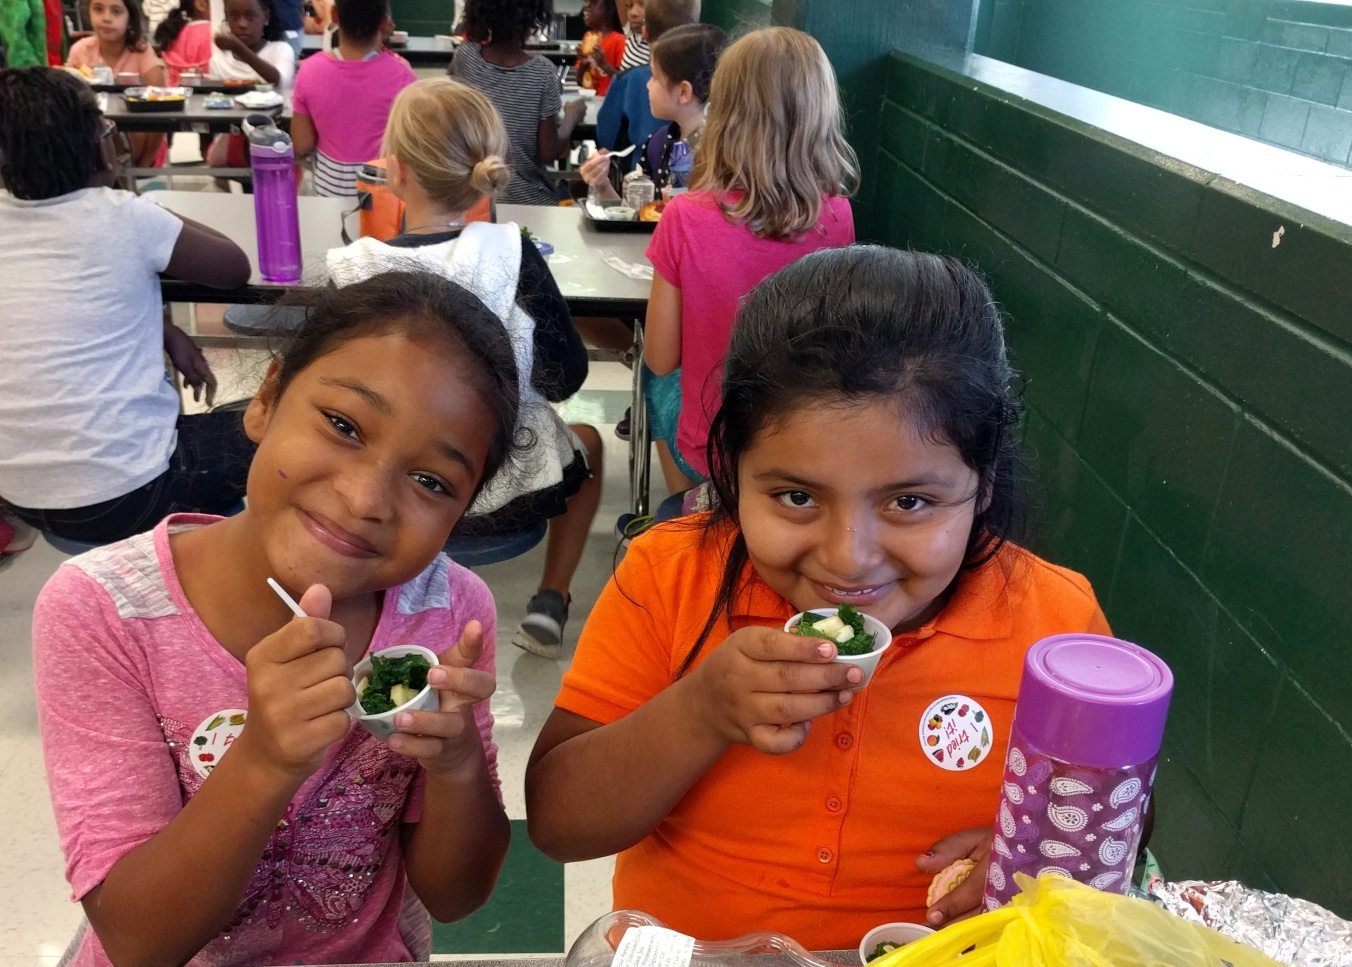 These Westwood Whirlwinds liked the kale salad!